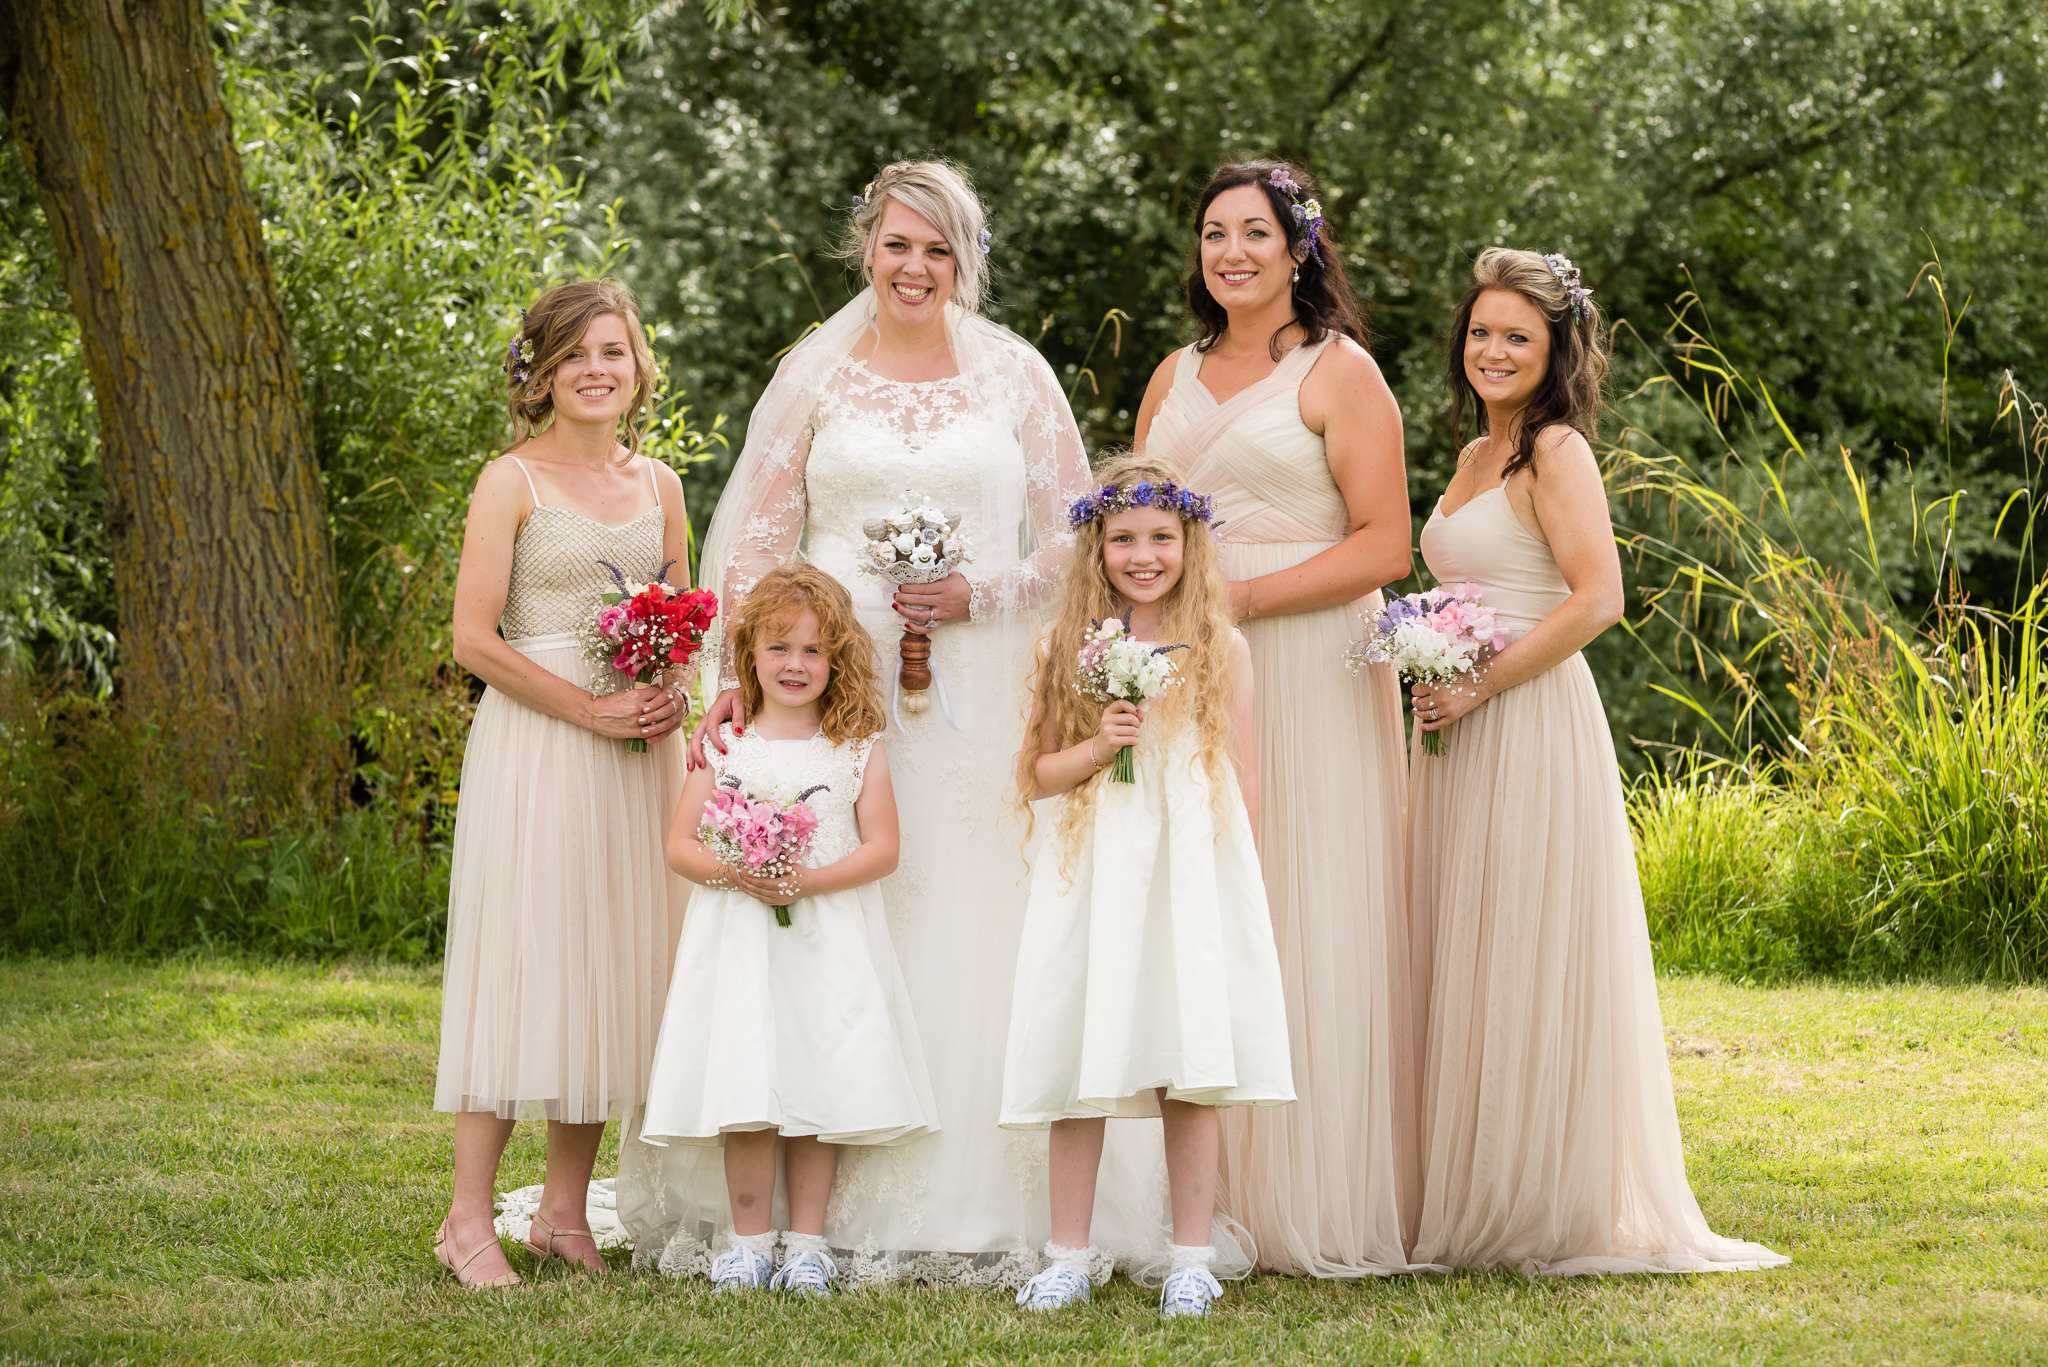 The bride and her bridesmaids and her flower girls